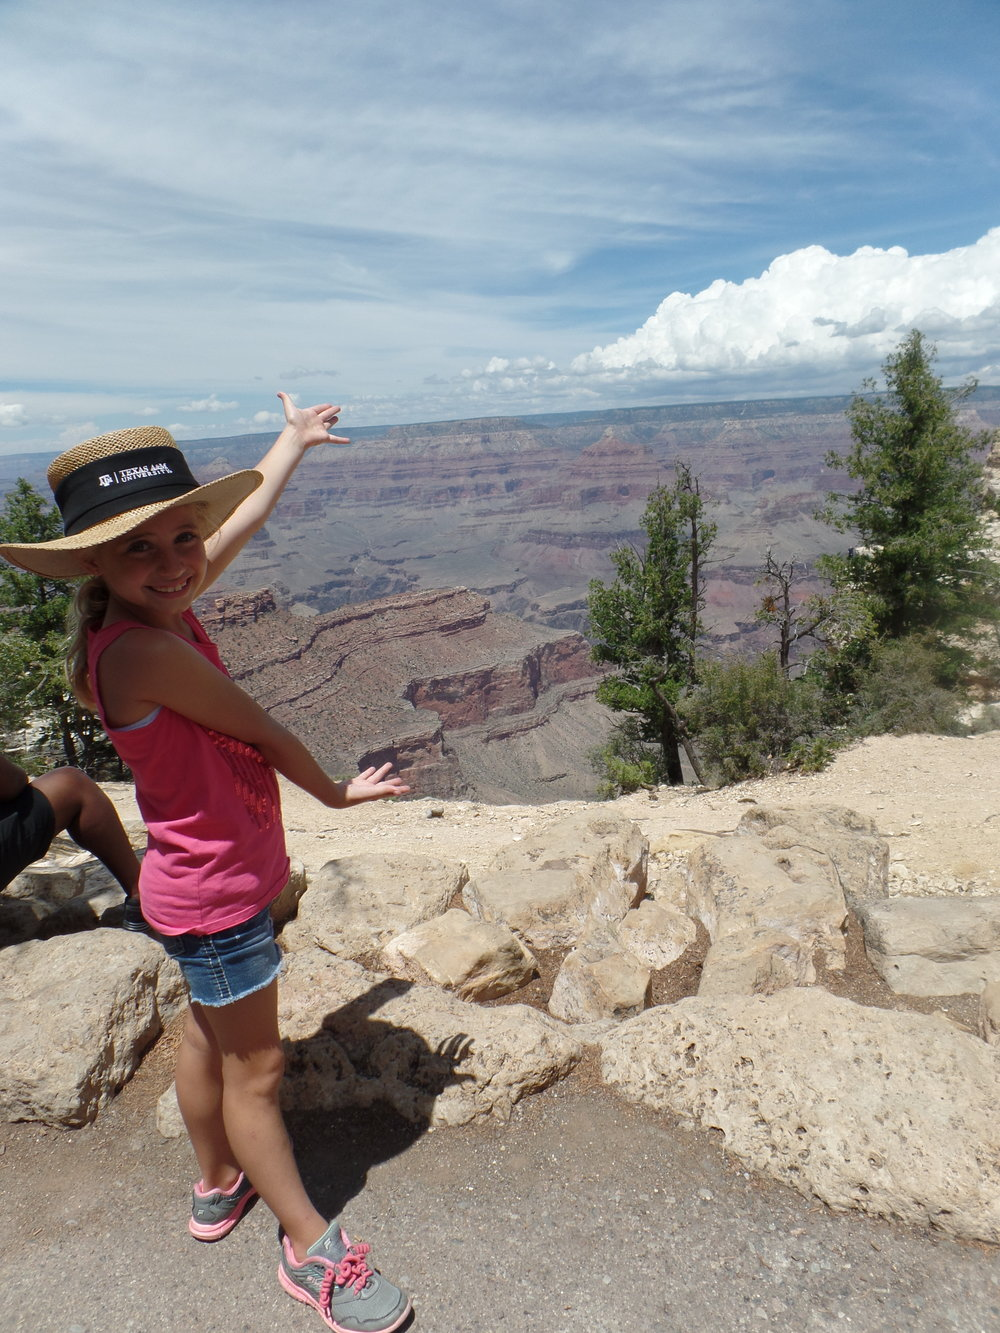 Ta da! Rowyn is showing off the Grand Canyon.